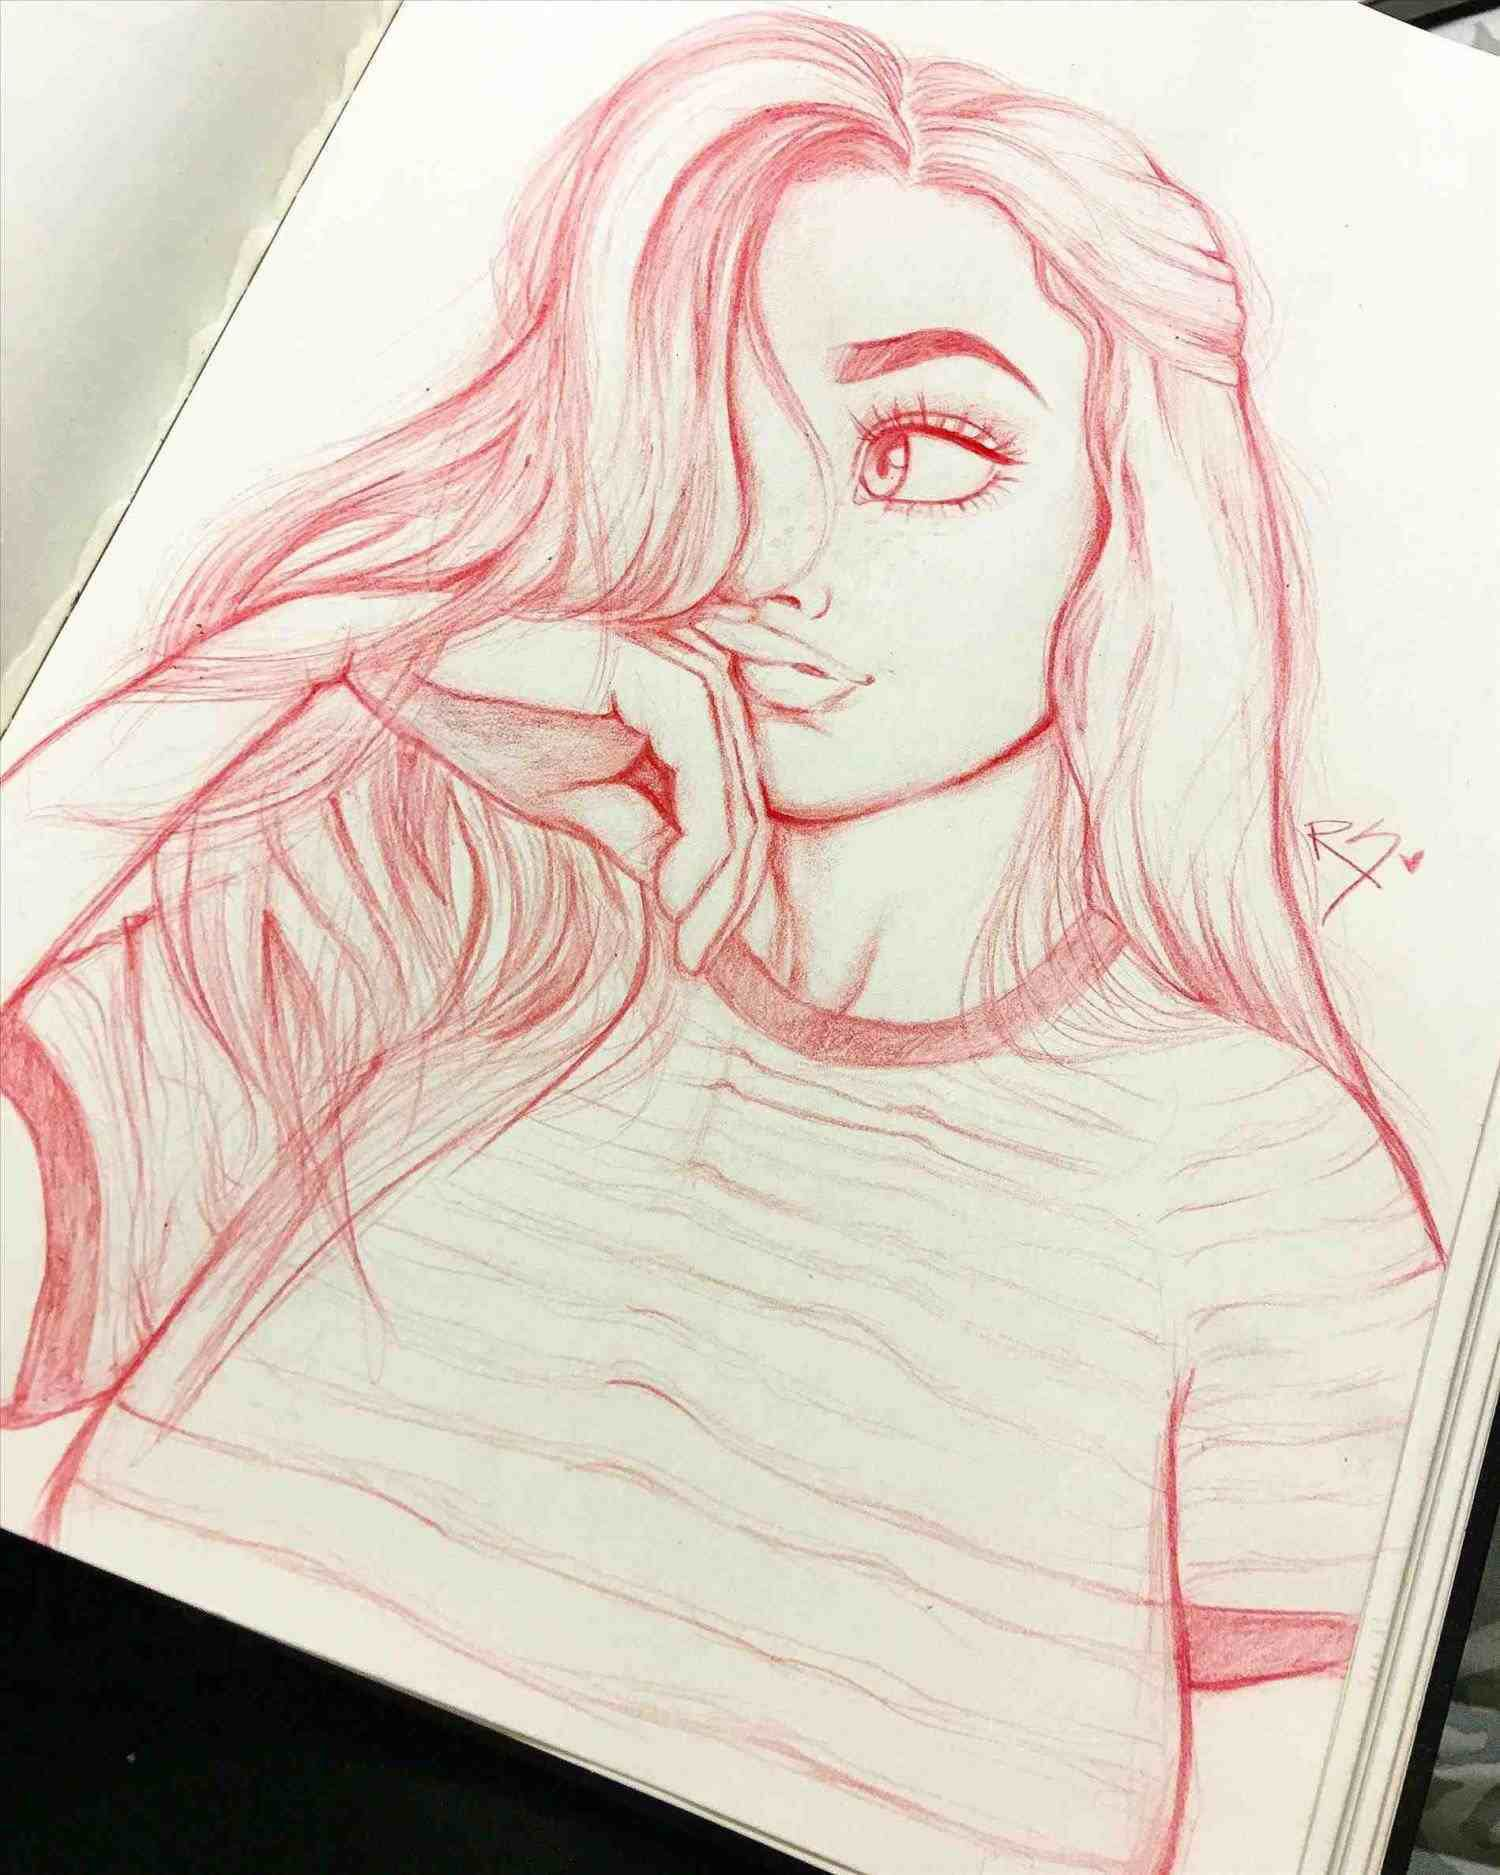 Pin By 𝕷𝖚𝖓𝖆𝖙𝖎𝖈 On Art In 2019 Cute Drawings Cool